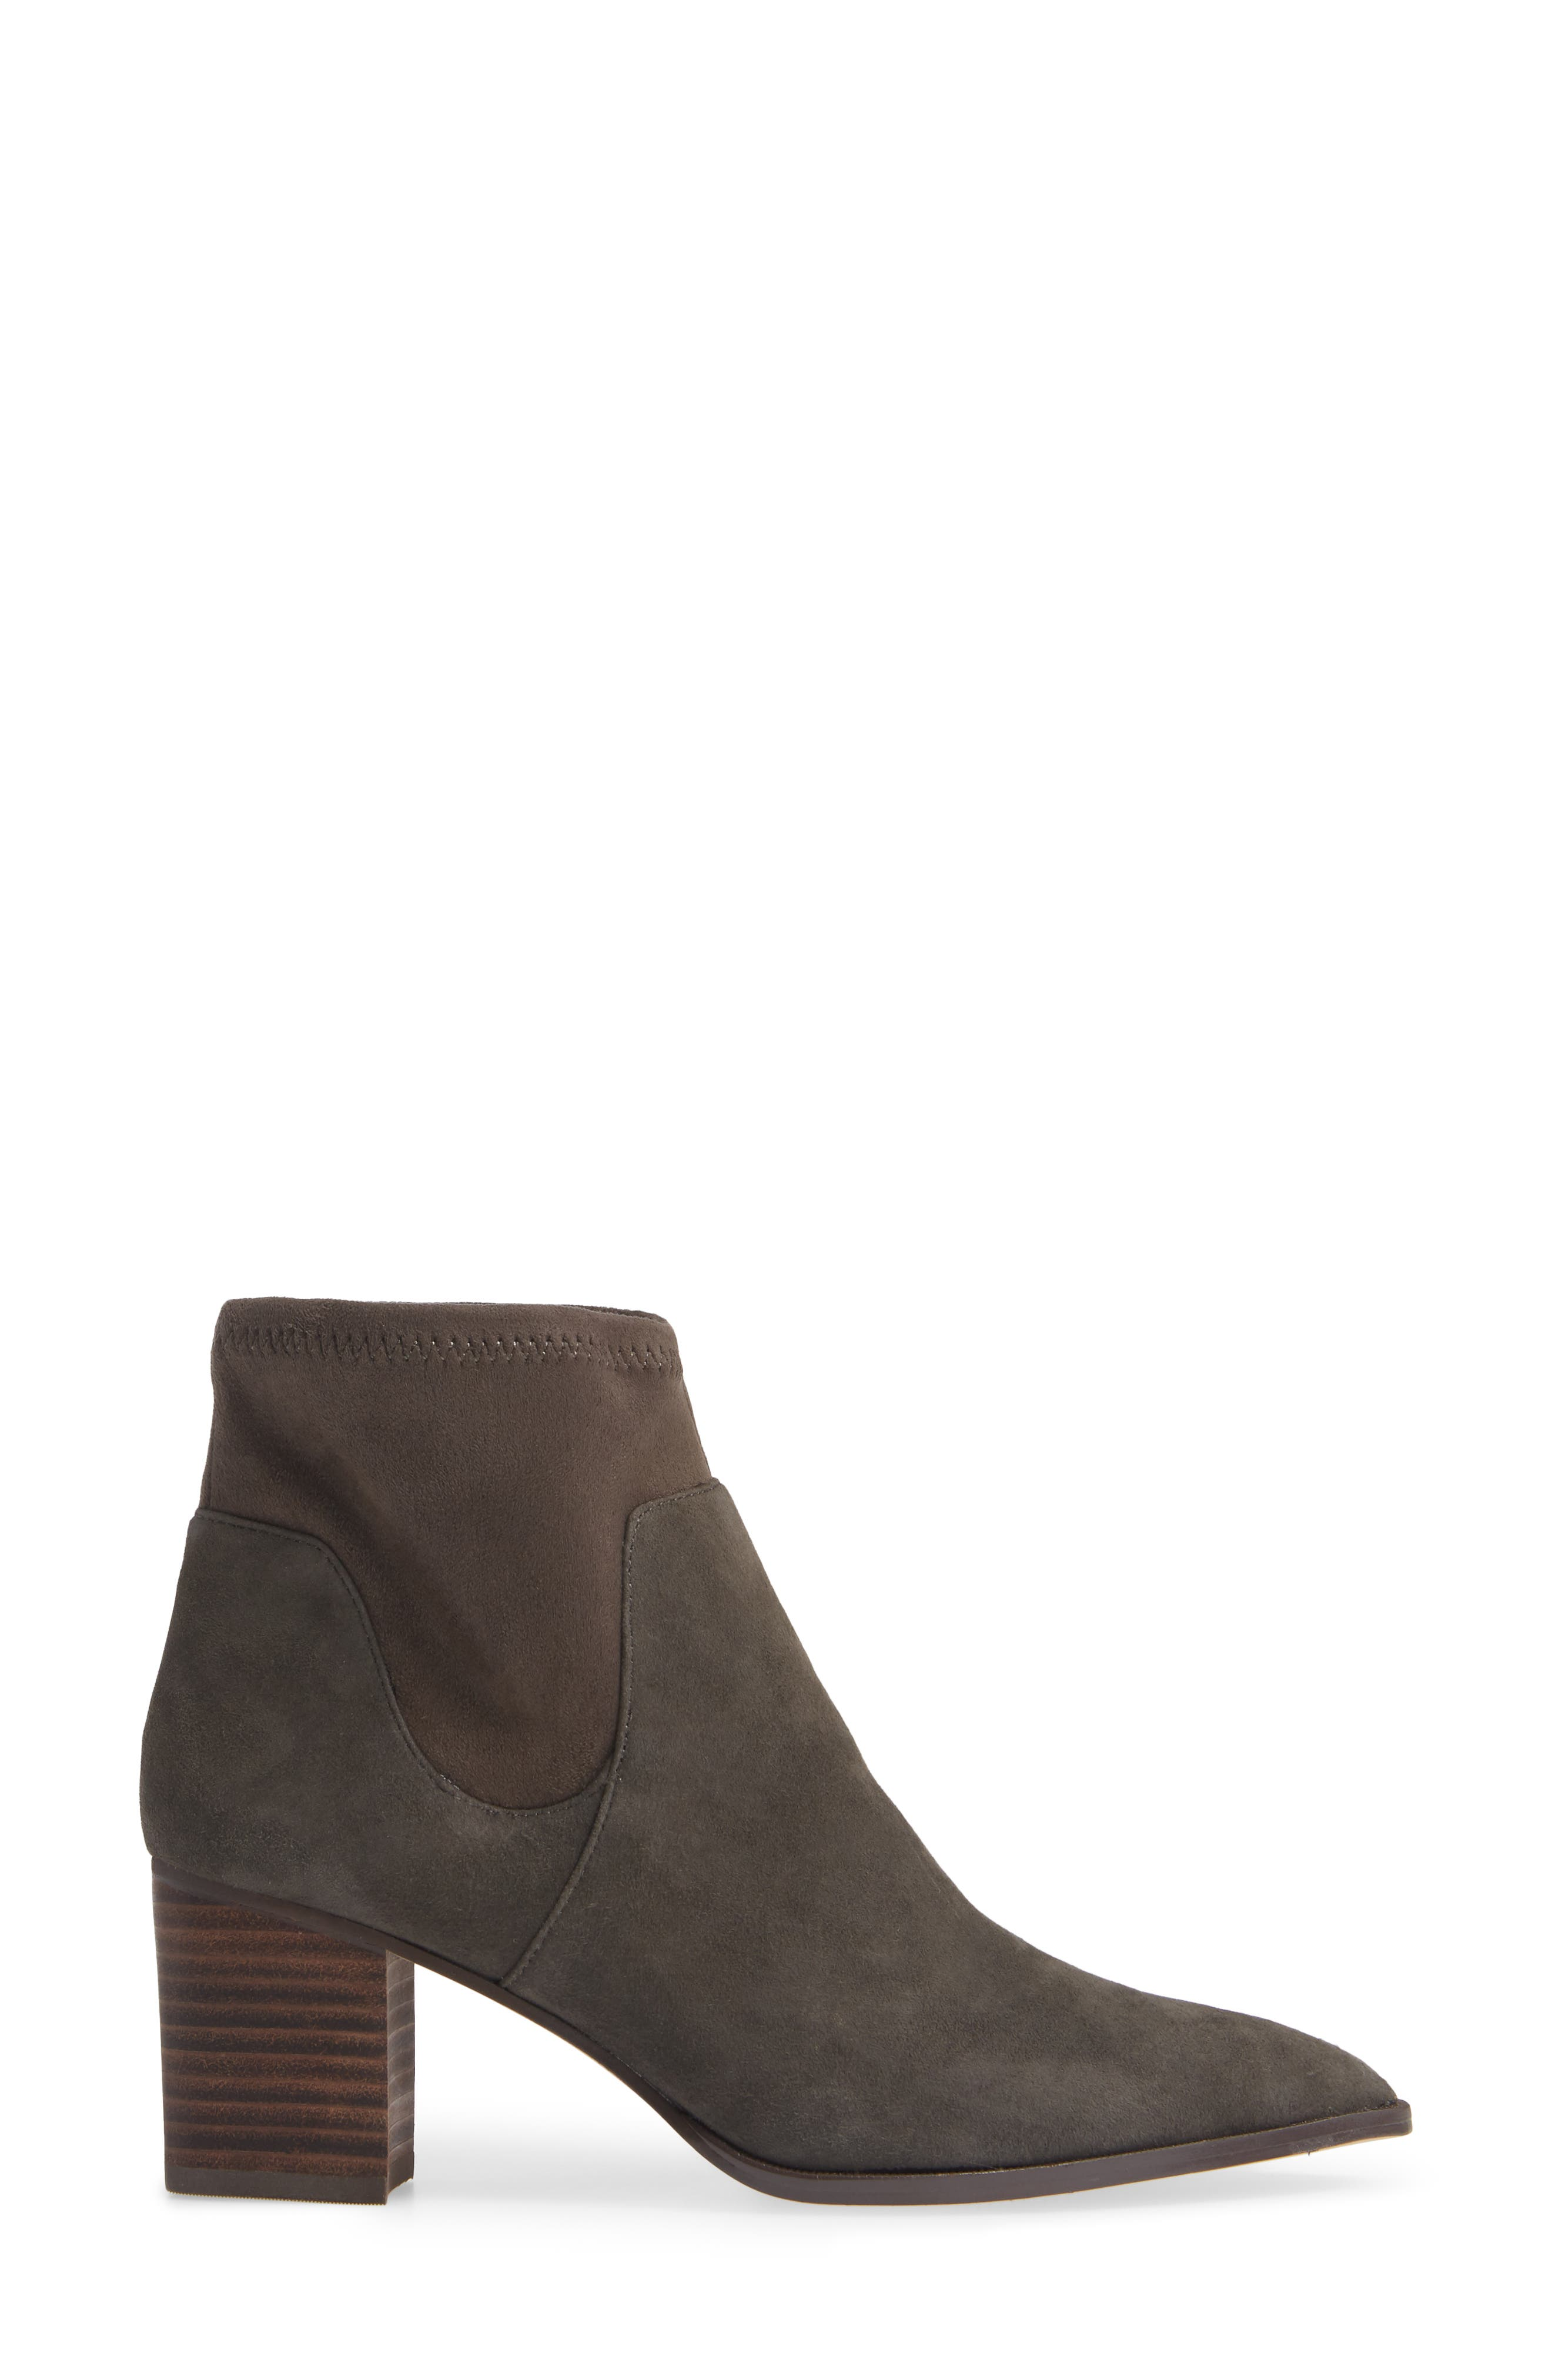 Dawnina Bootie,                             Alternate thumbnail 3, color,                             IRON SUEDE